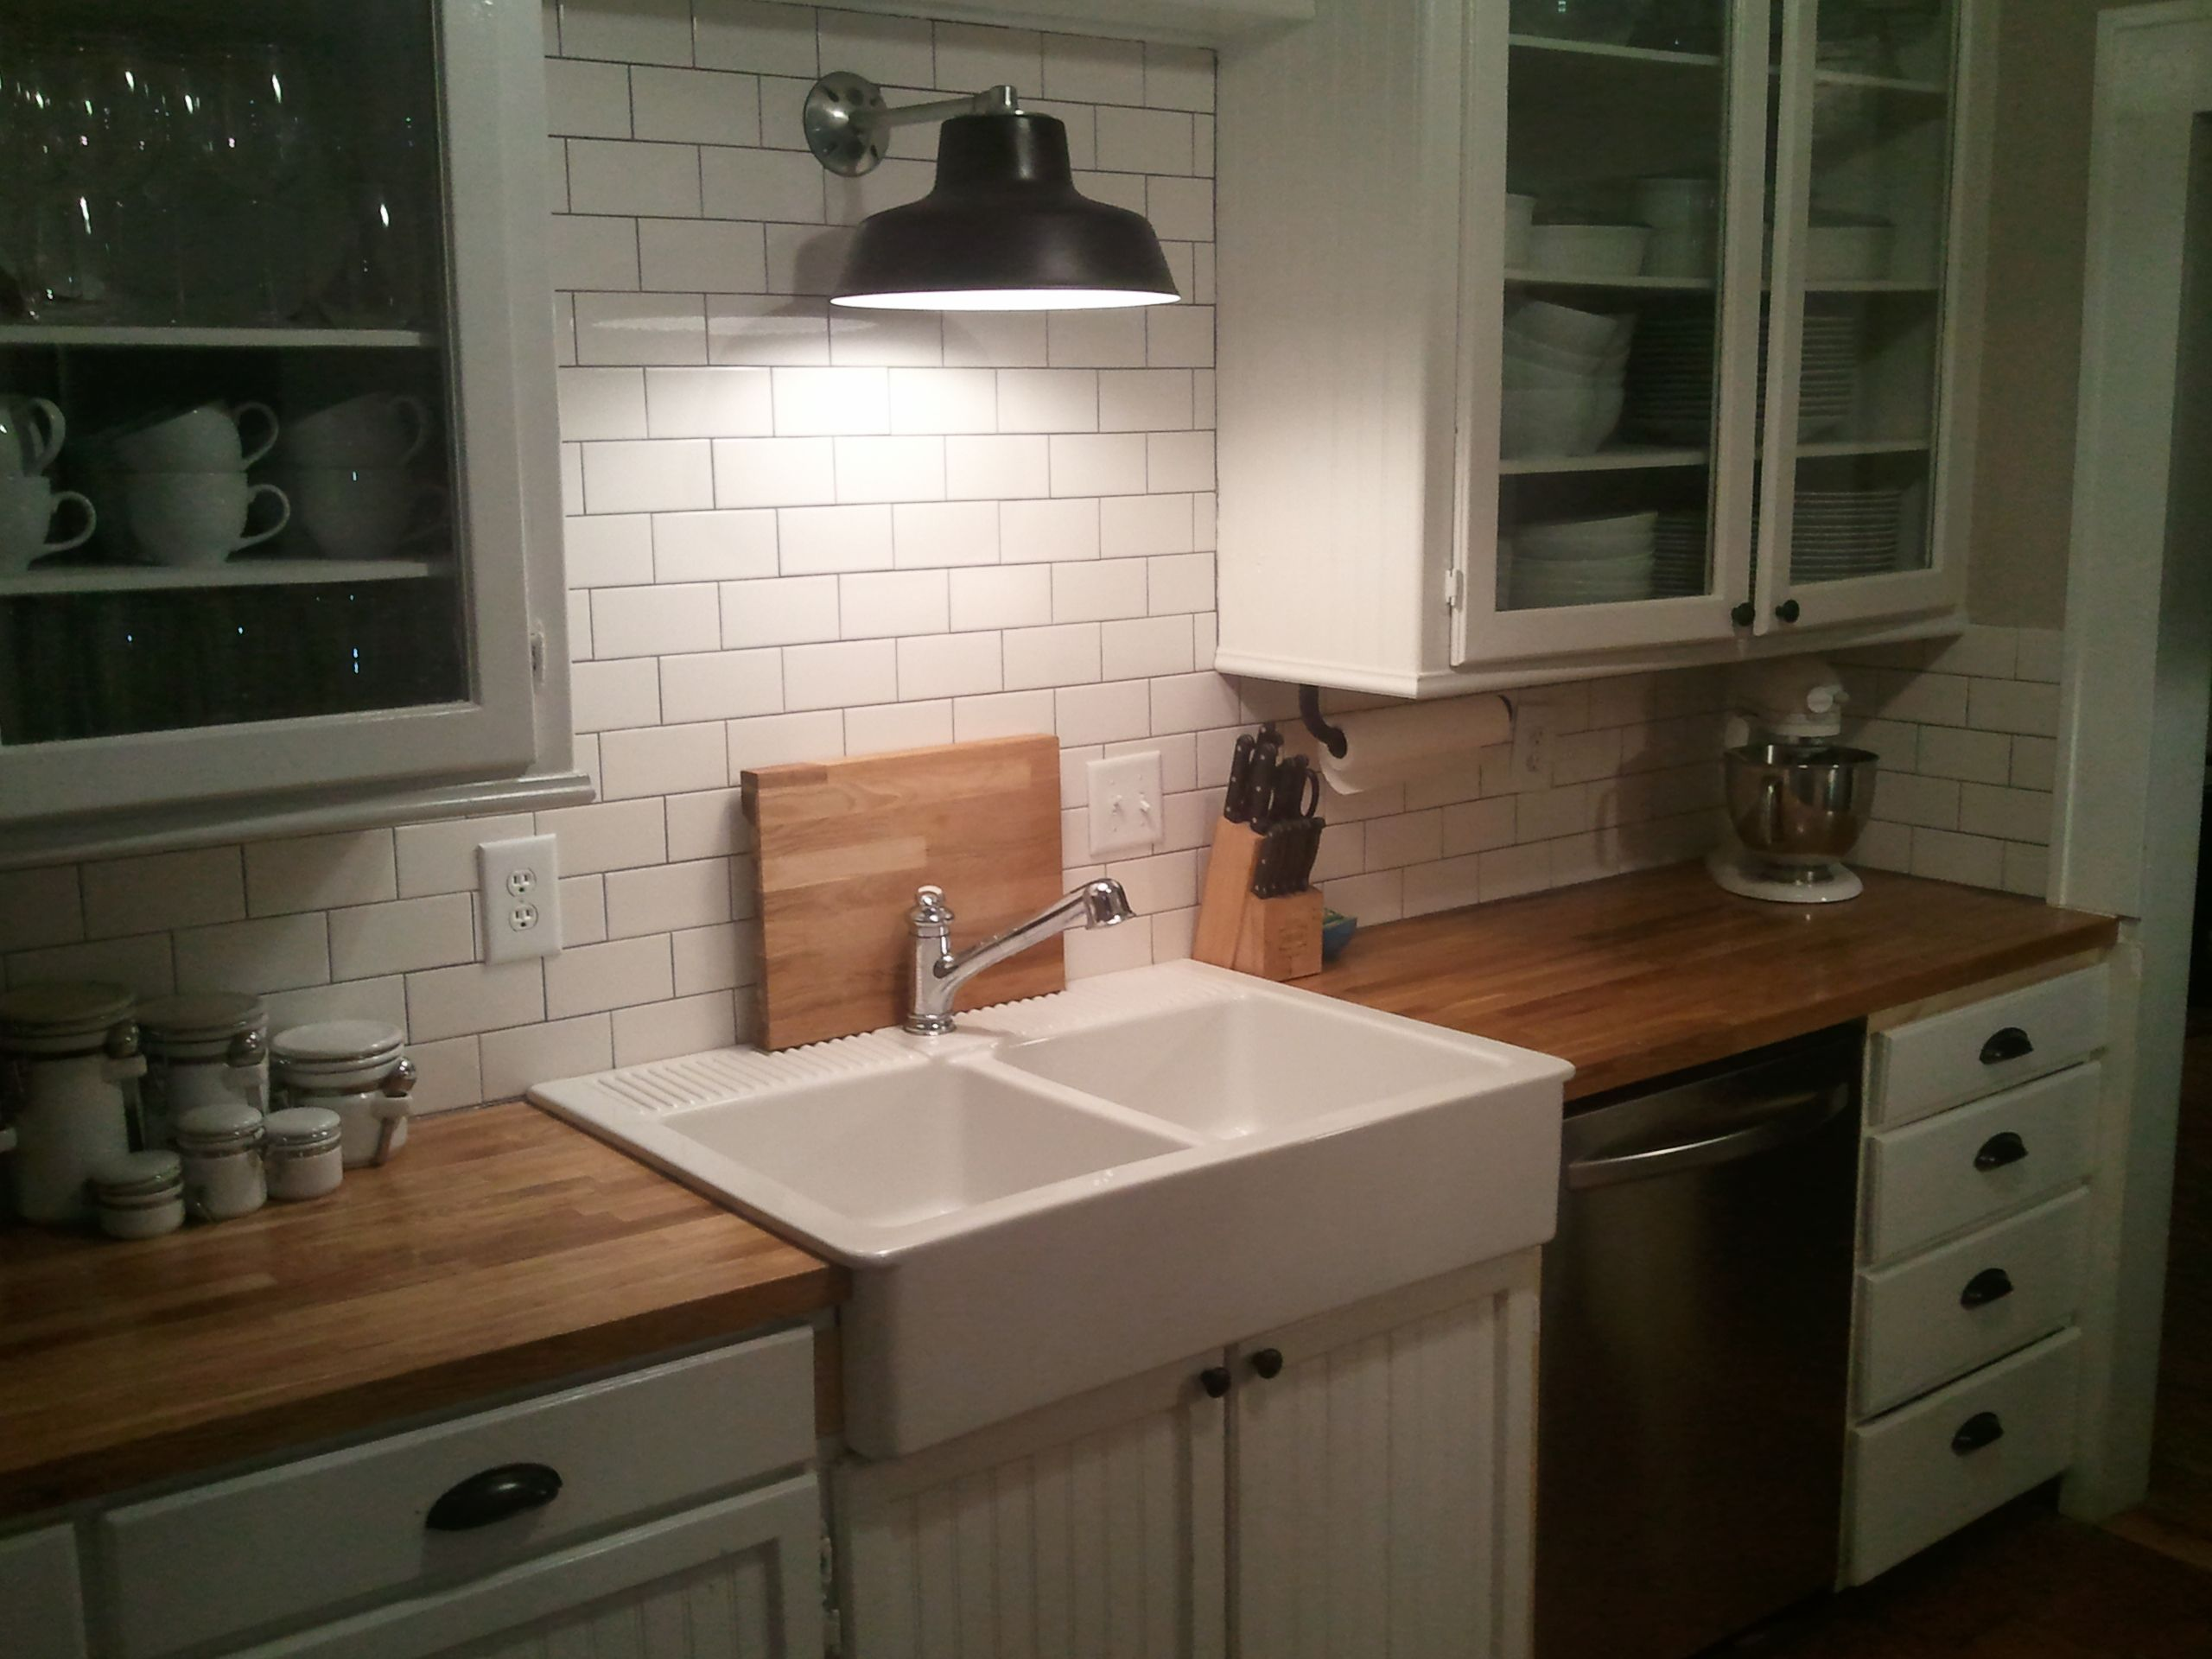 Ikea Kitchen Counters Aid 600 Our Small Diy Remodel In North Dakota